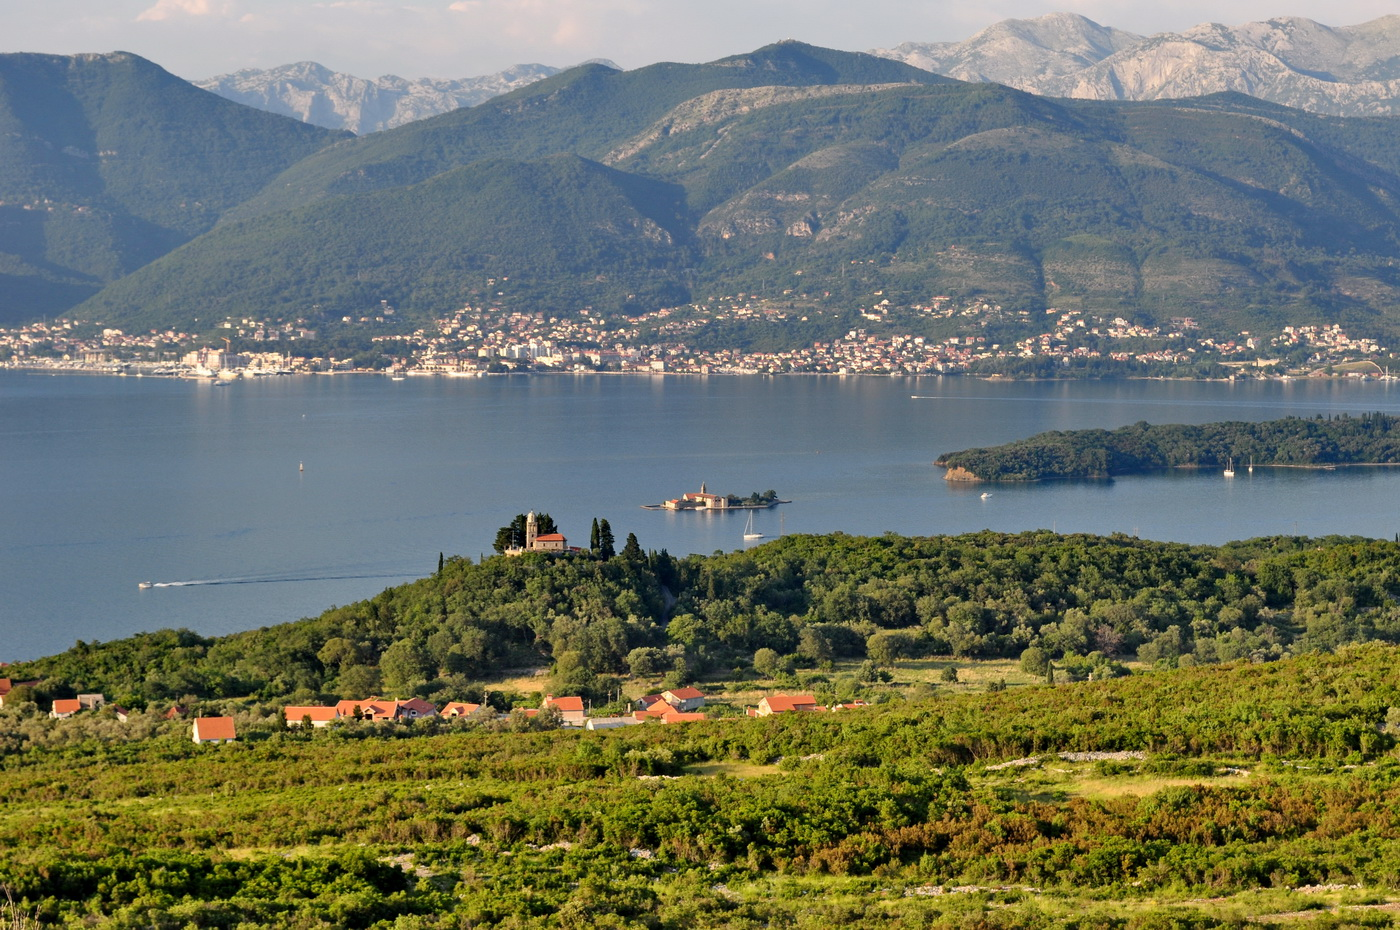 Panorama Tivta iz Luštice - Photo: Marusic M